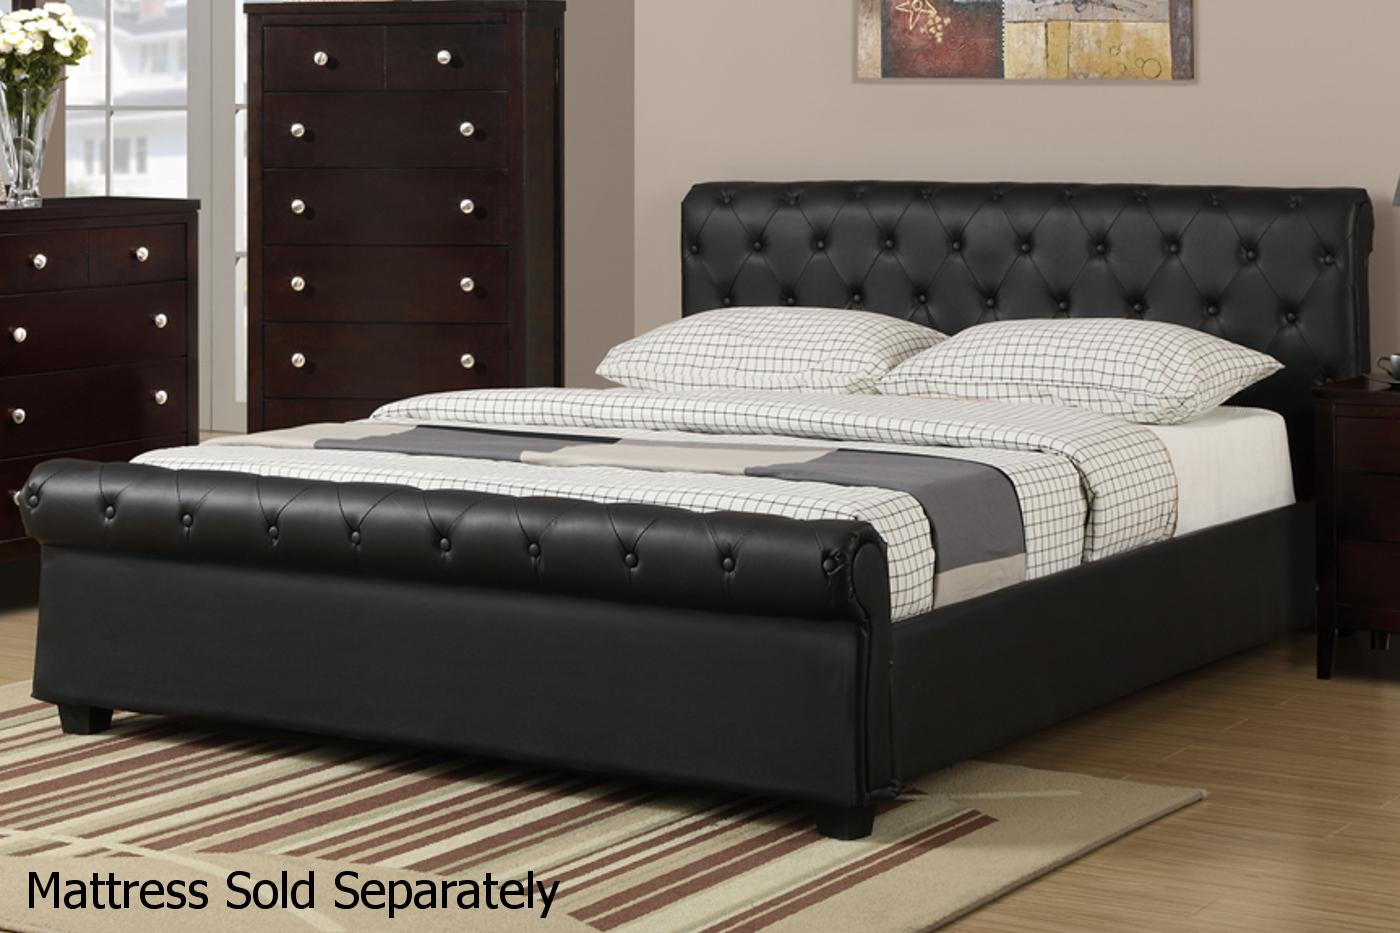 Black Leather Queen Size Bed - Steal-A-Sofa Furniture Outlet Los Angeles CA